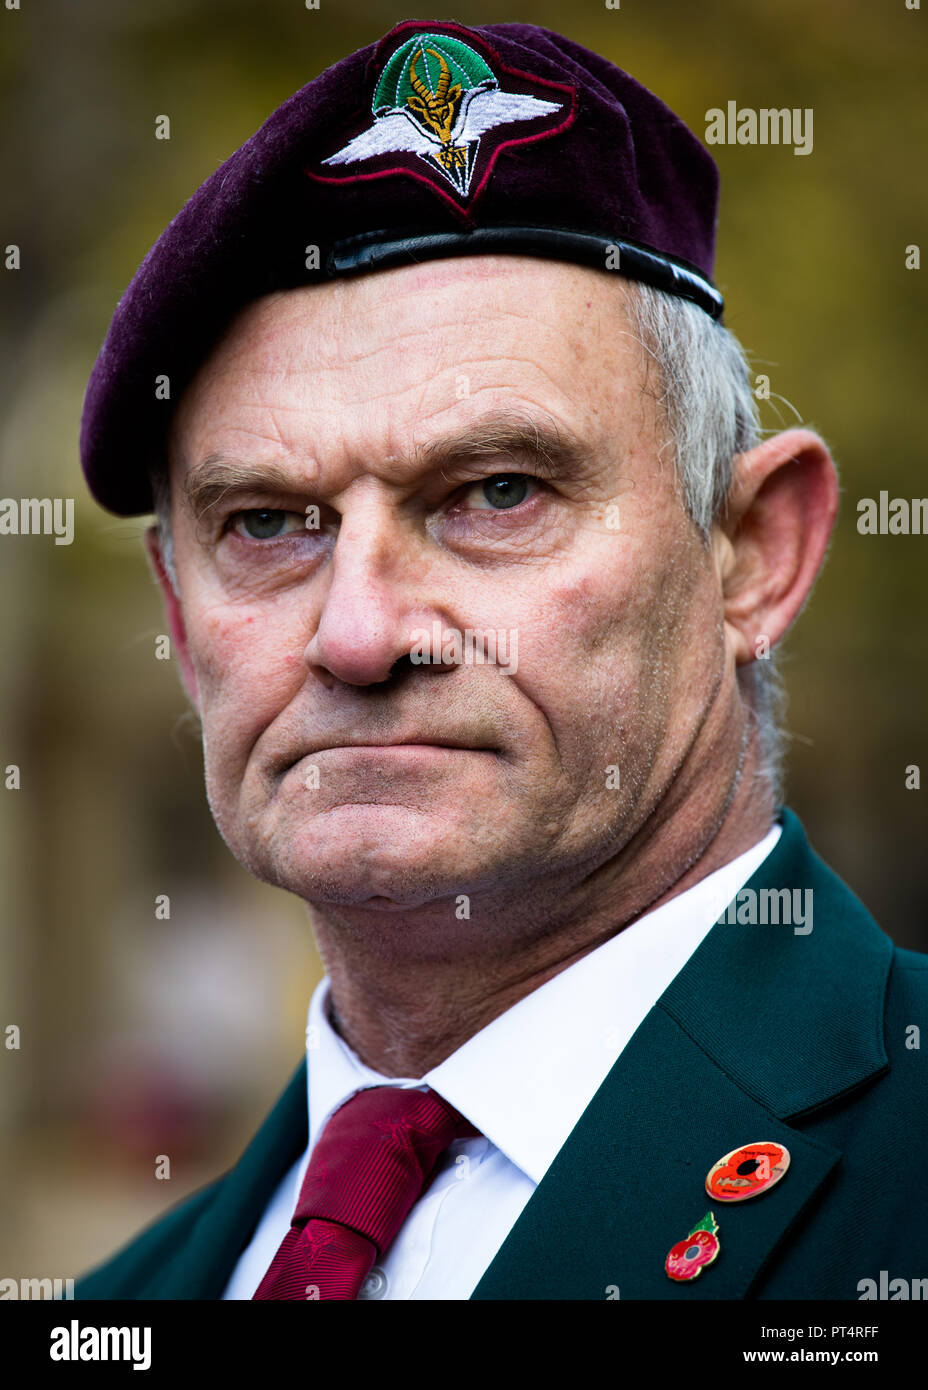 South African war veteran wearing his red beret at the Remembrance Day Parade, London - Stock Image